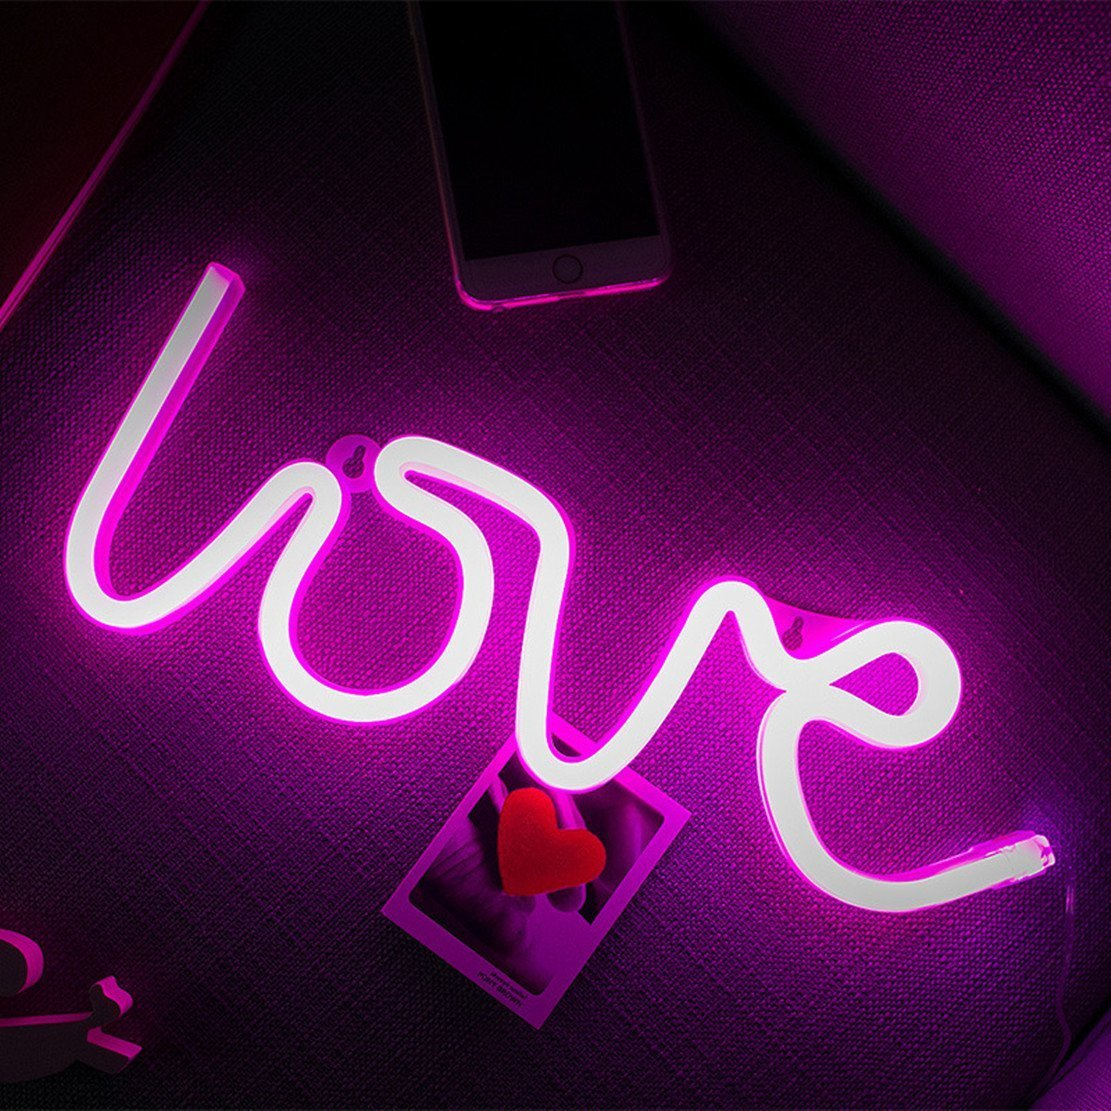 Neon Light,LED Love Sign Shaped Decor Light,Wall Decor for Valentine's Day,Birthday party,Kids Room, Living Room, Wedding Party Decor (purple pink)